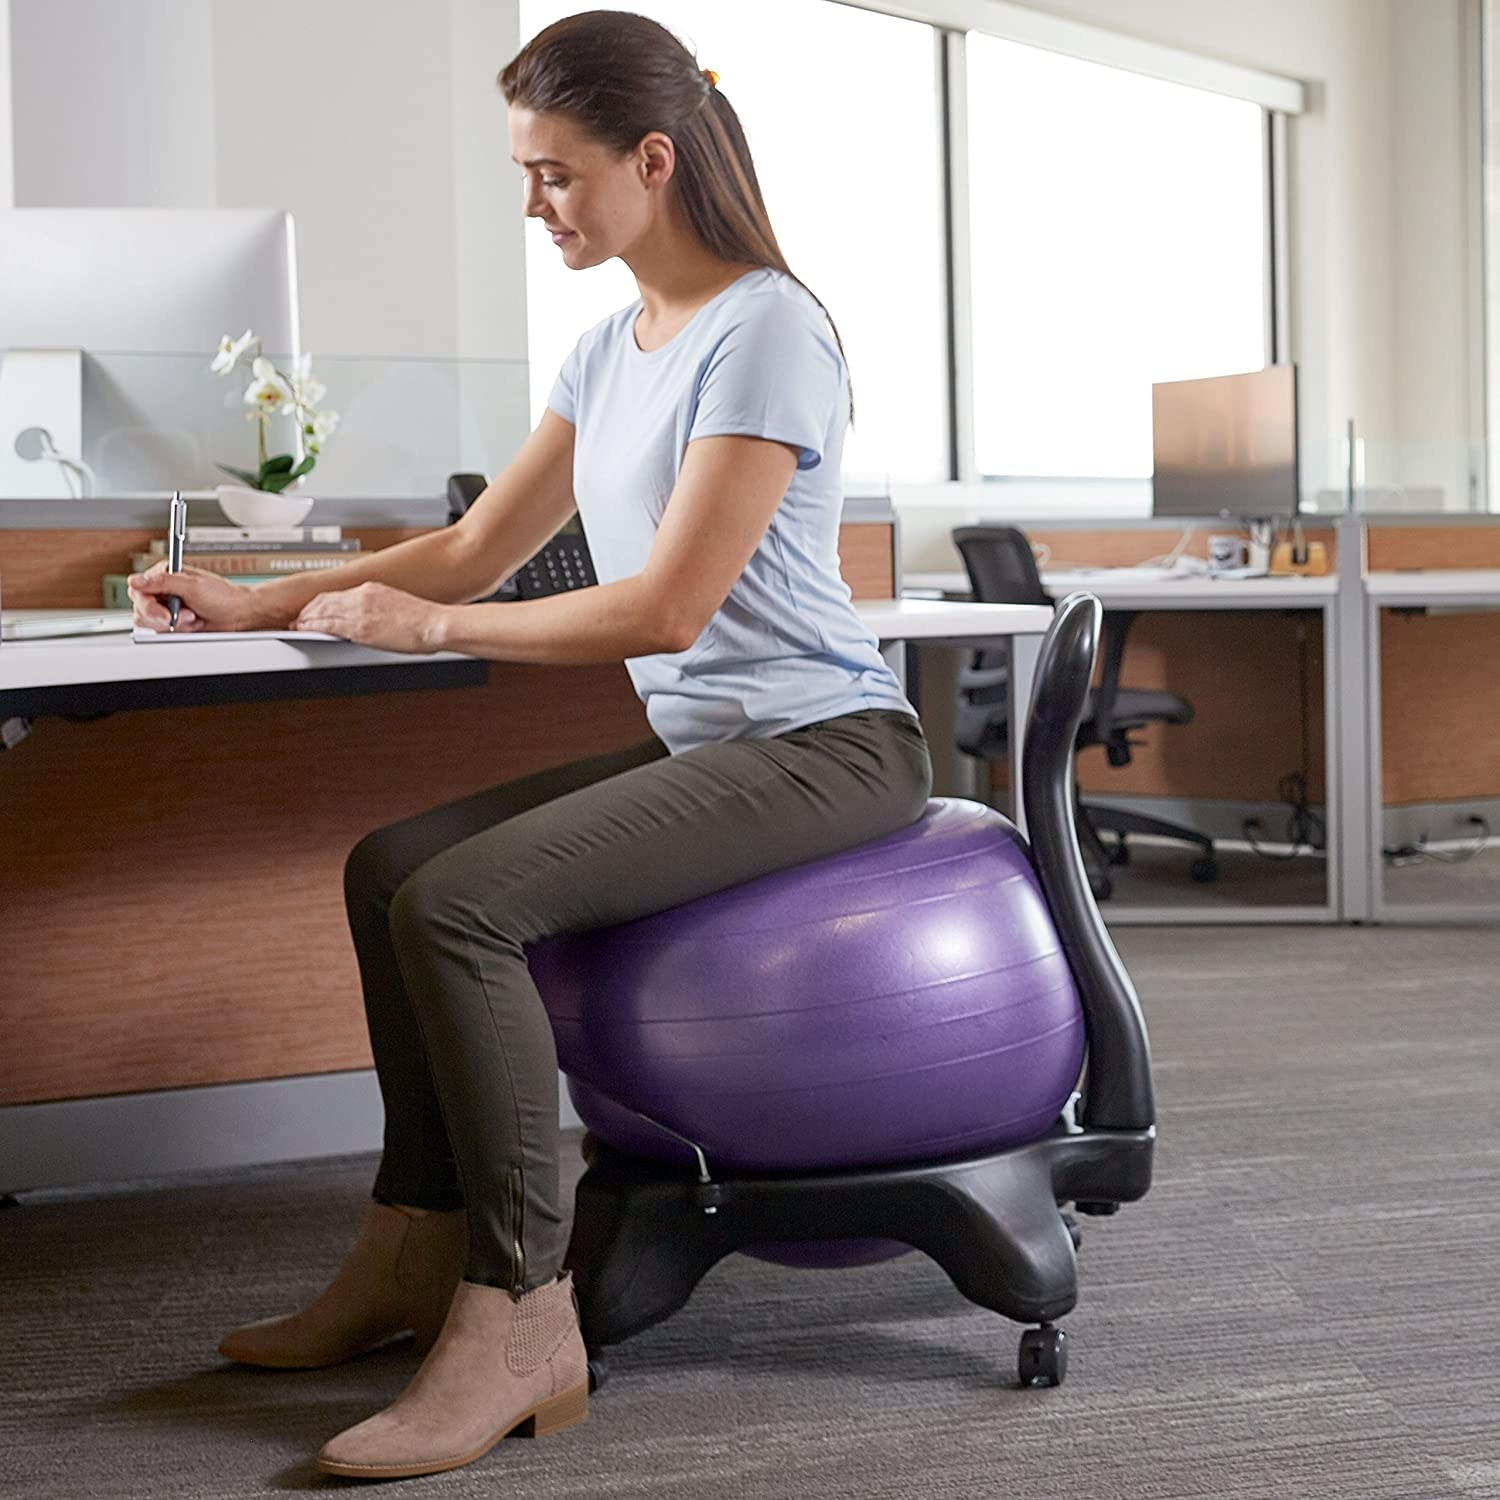 Model sitting on an office chair with a purple blow up ball on it